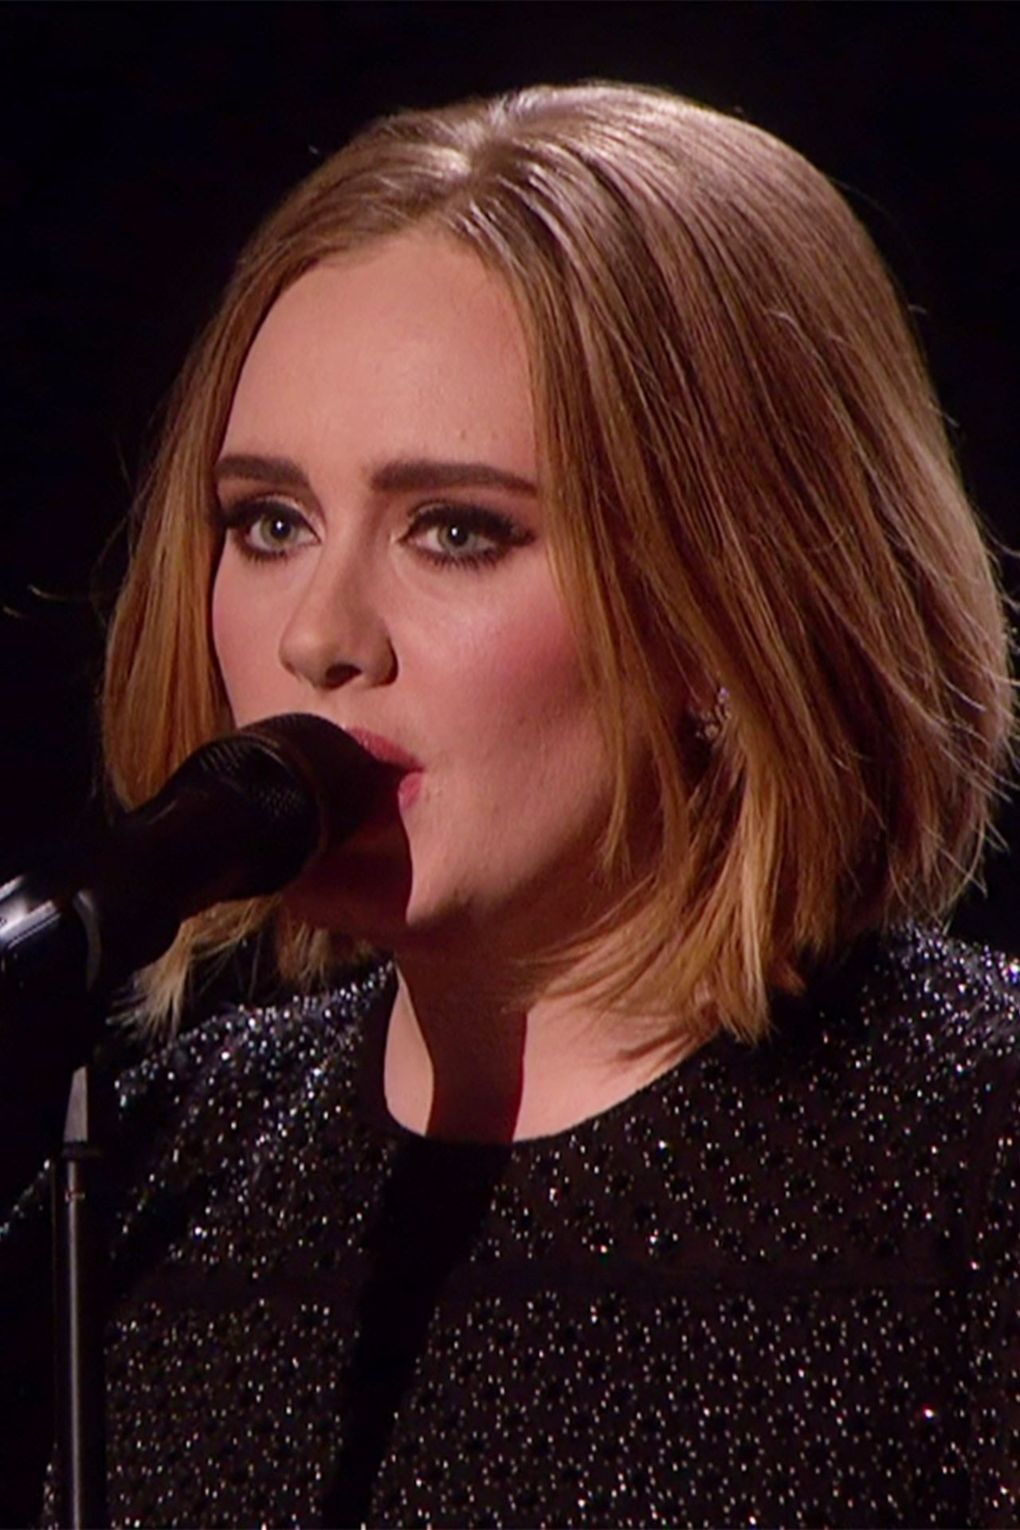 Adele Shows Off Her New Bob Hairstyle On X Factor Short Bob Hairstyles Adele Hair Short Hair Styles